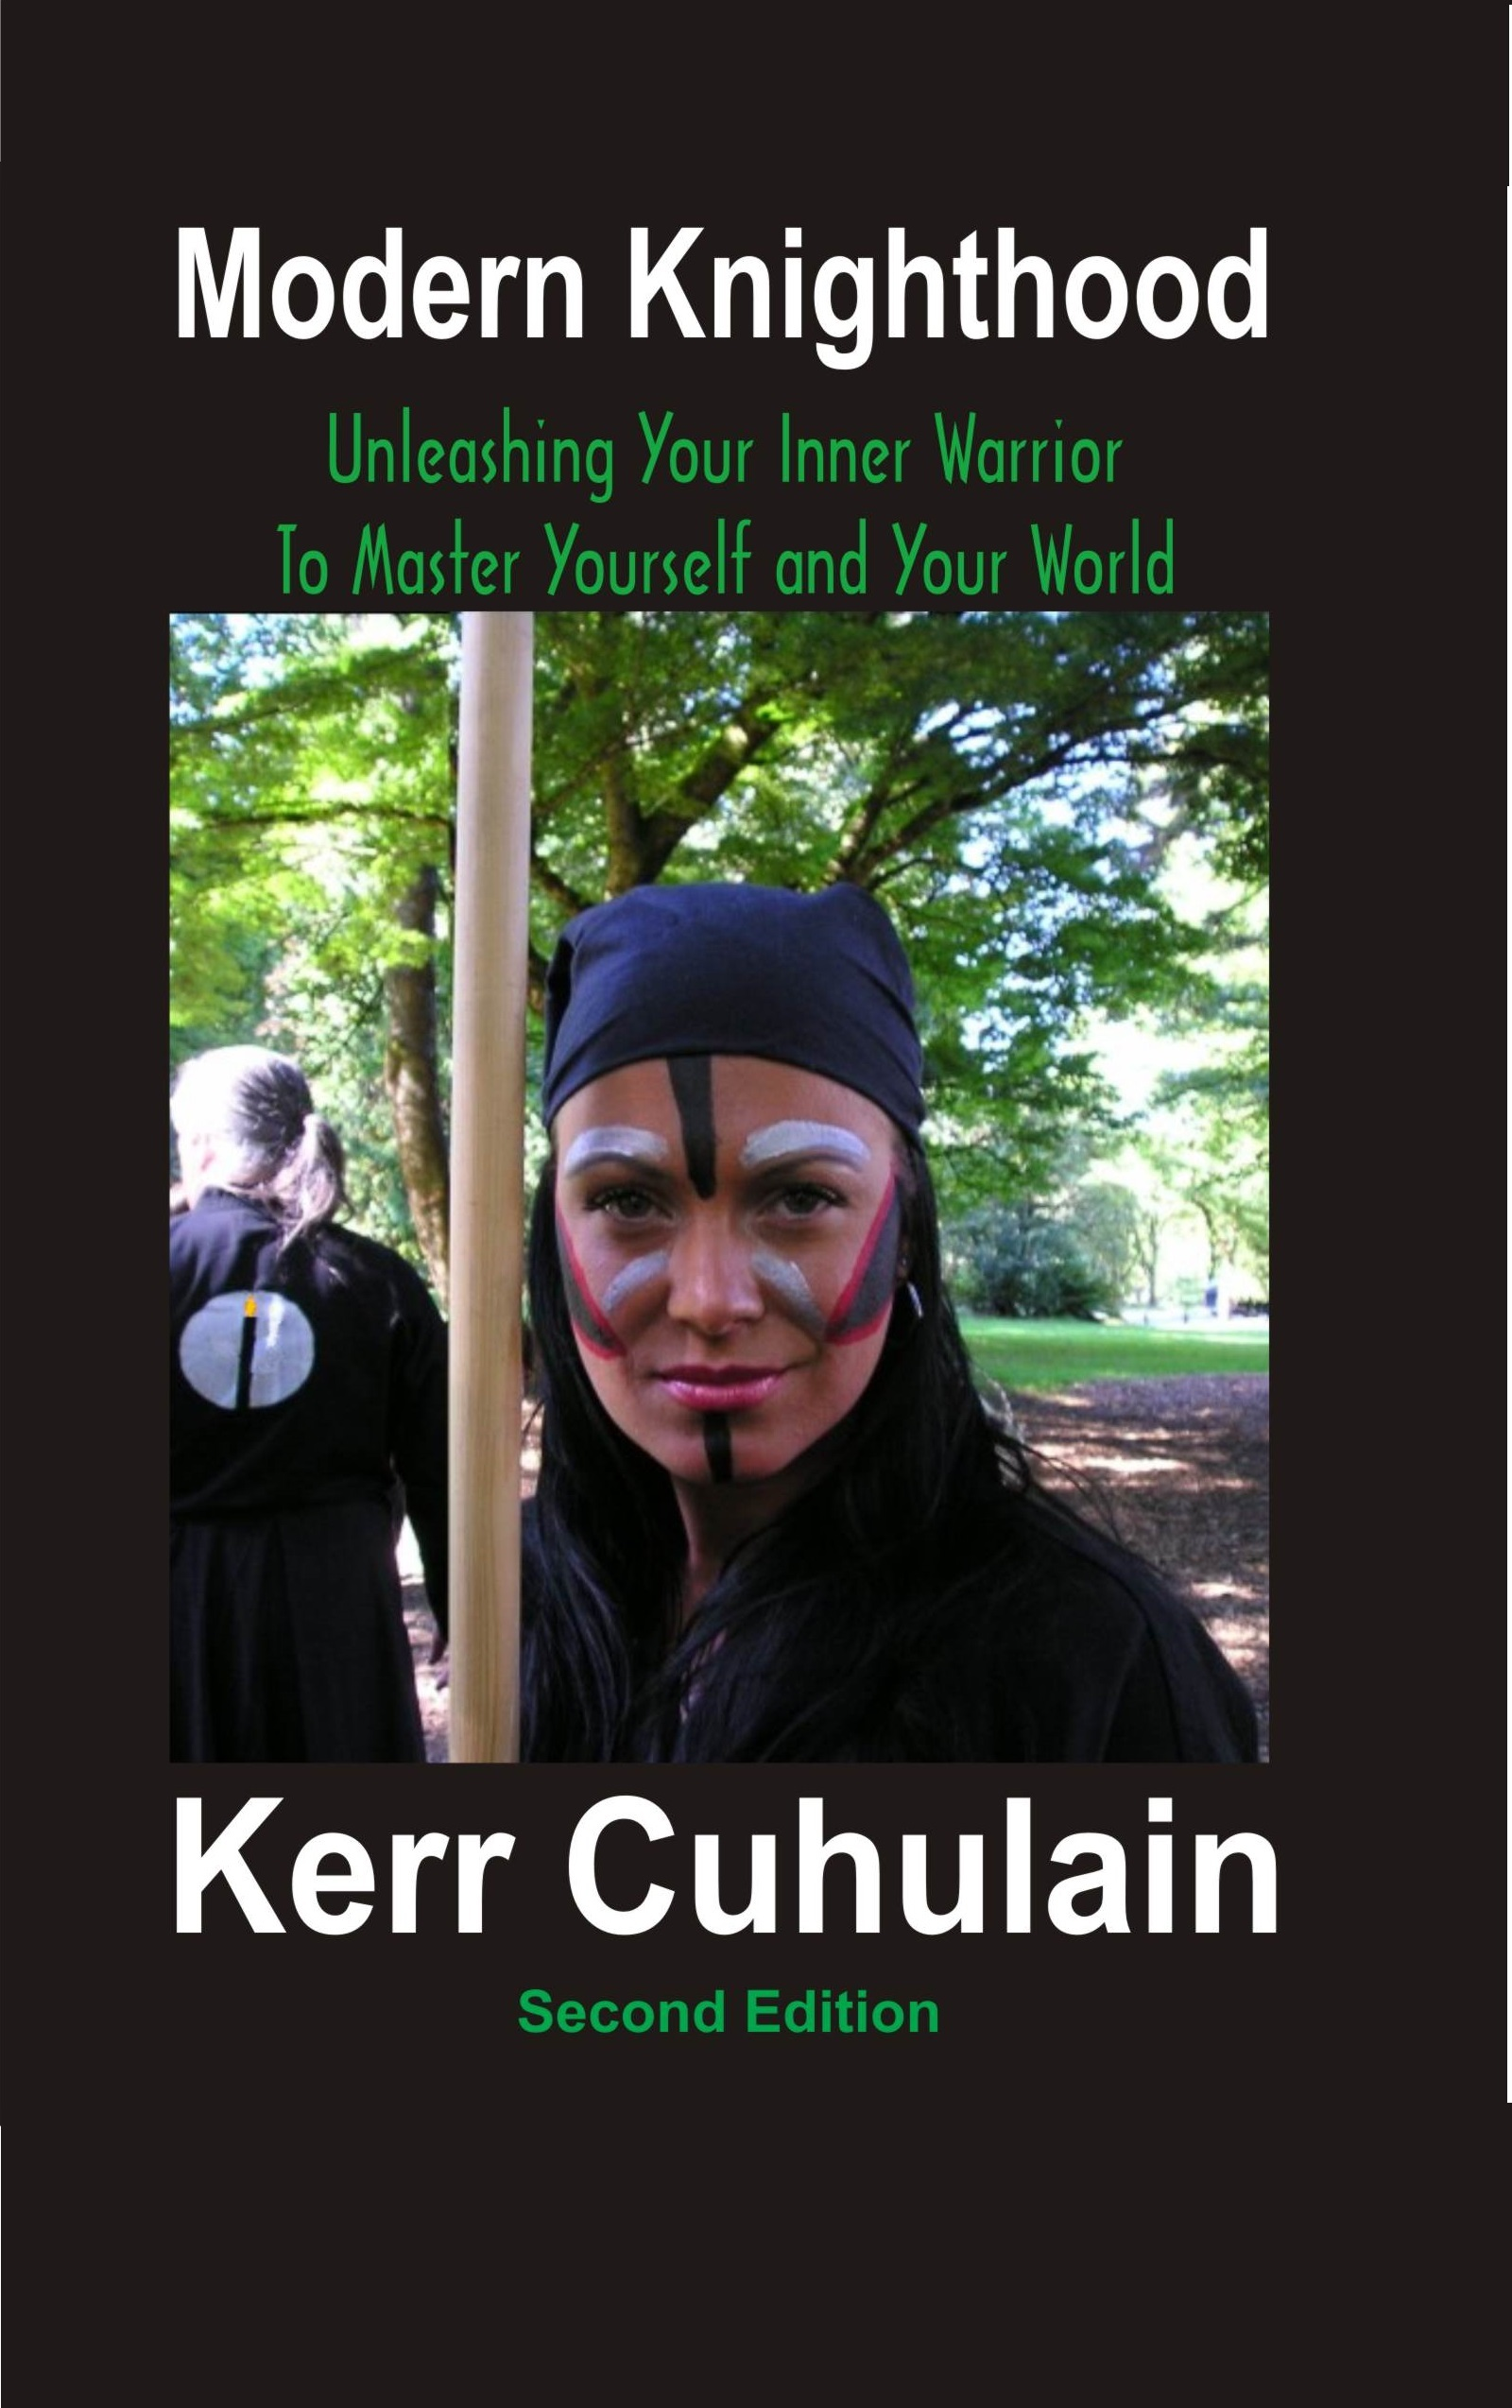 Modern Knighthood: Unleashing Your Inner Power to Master Yourself and the  World  2nd Edition, an Ebook by Kerr Cuhulain